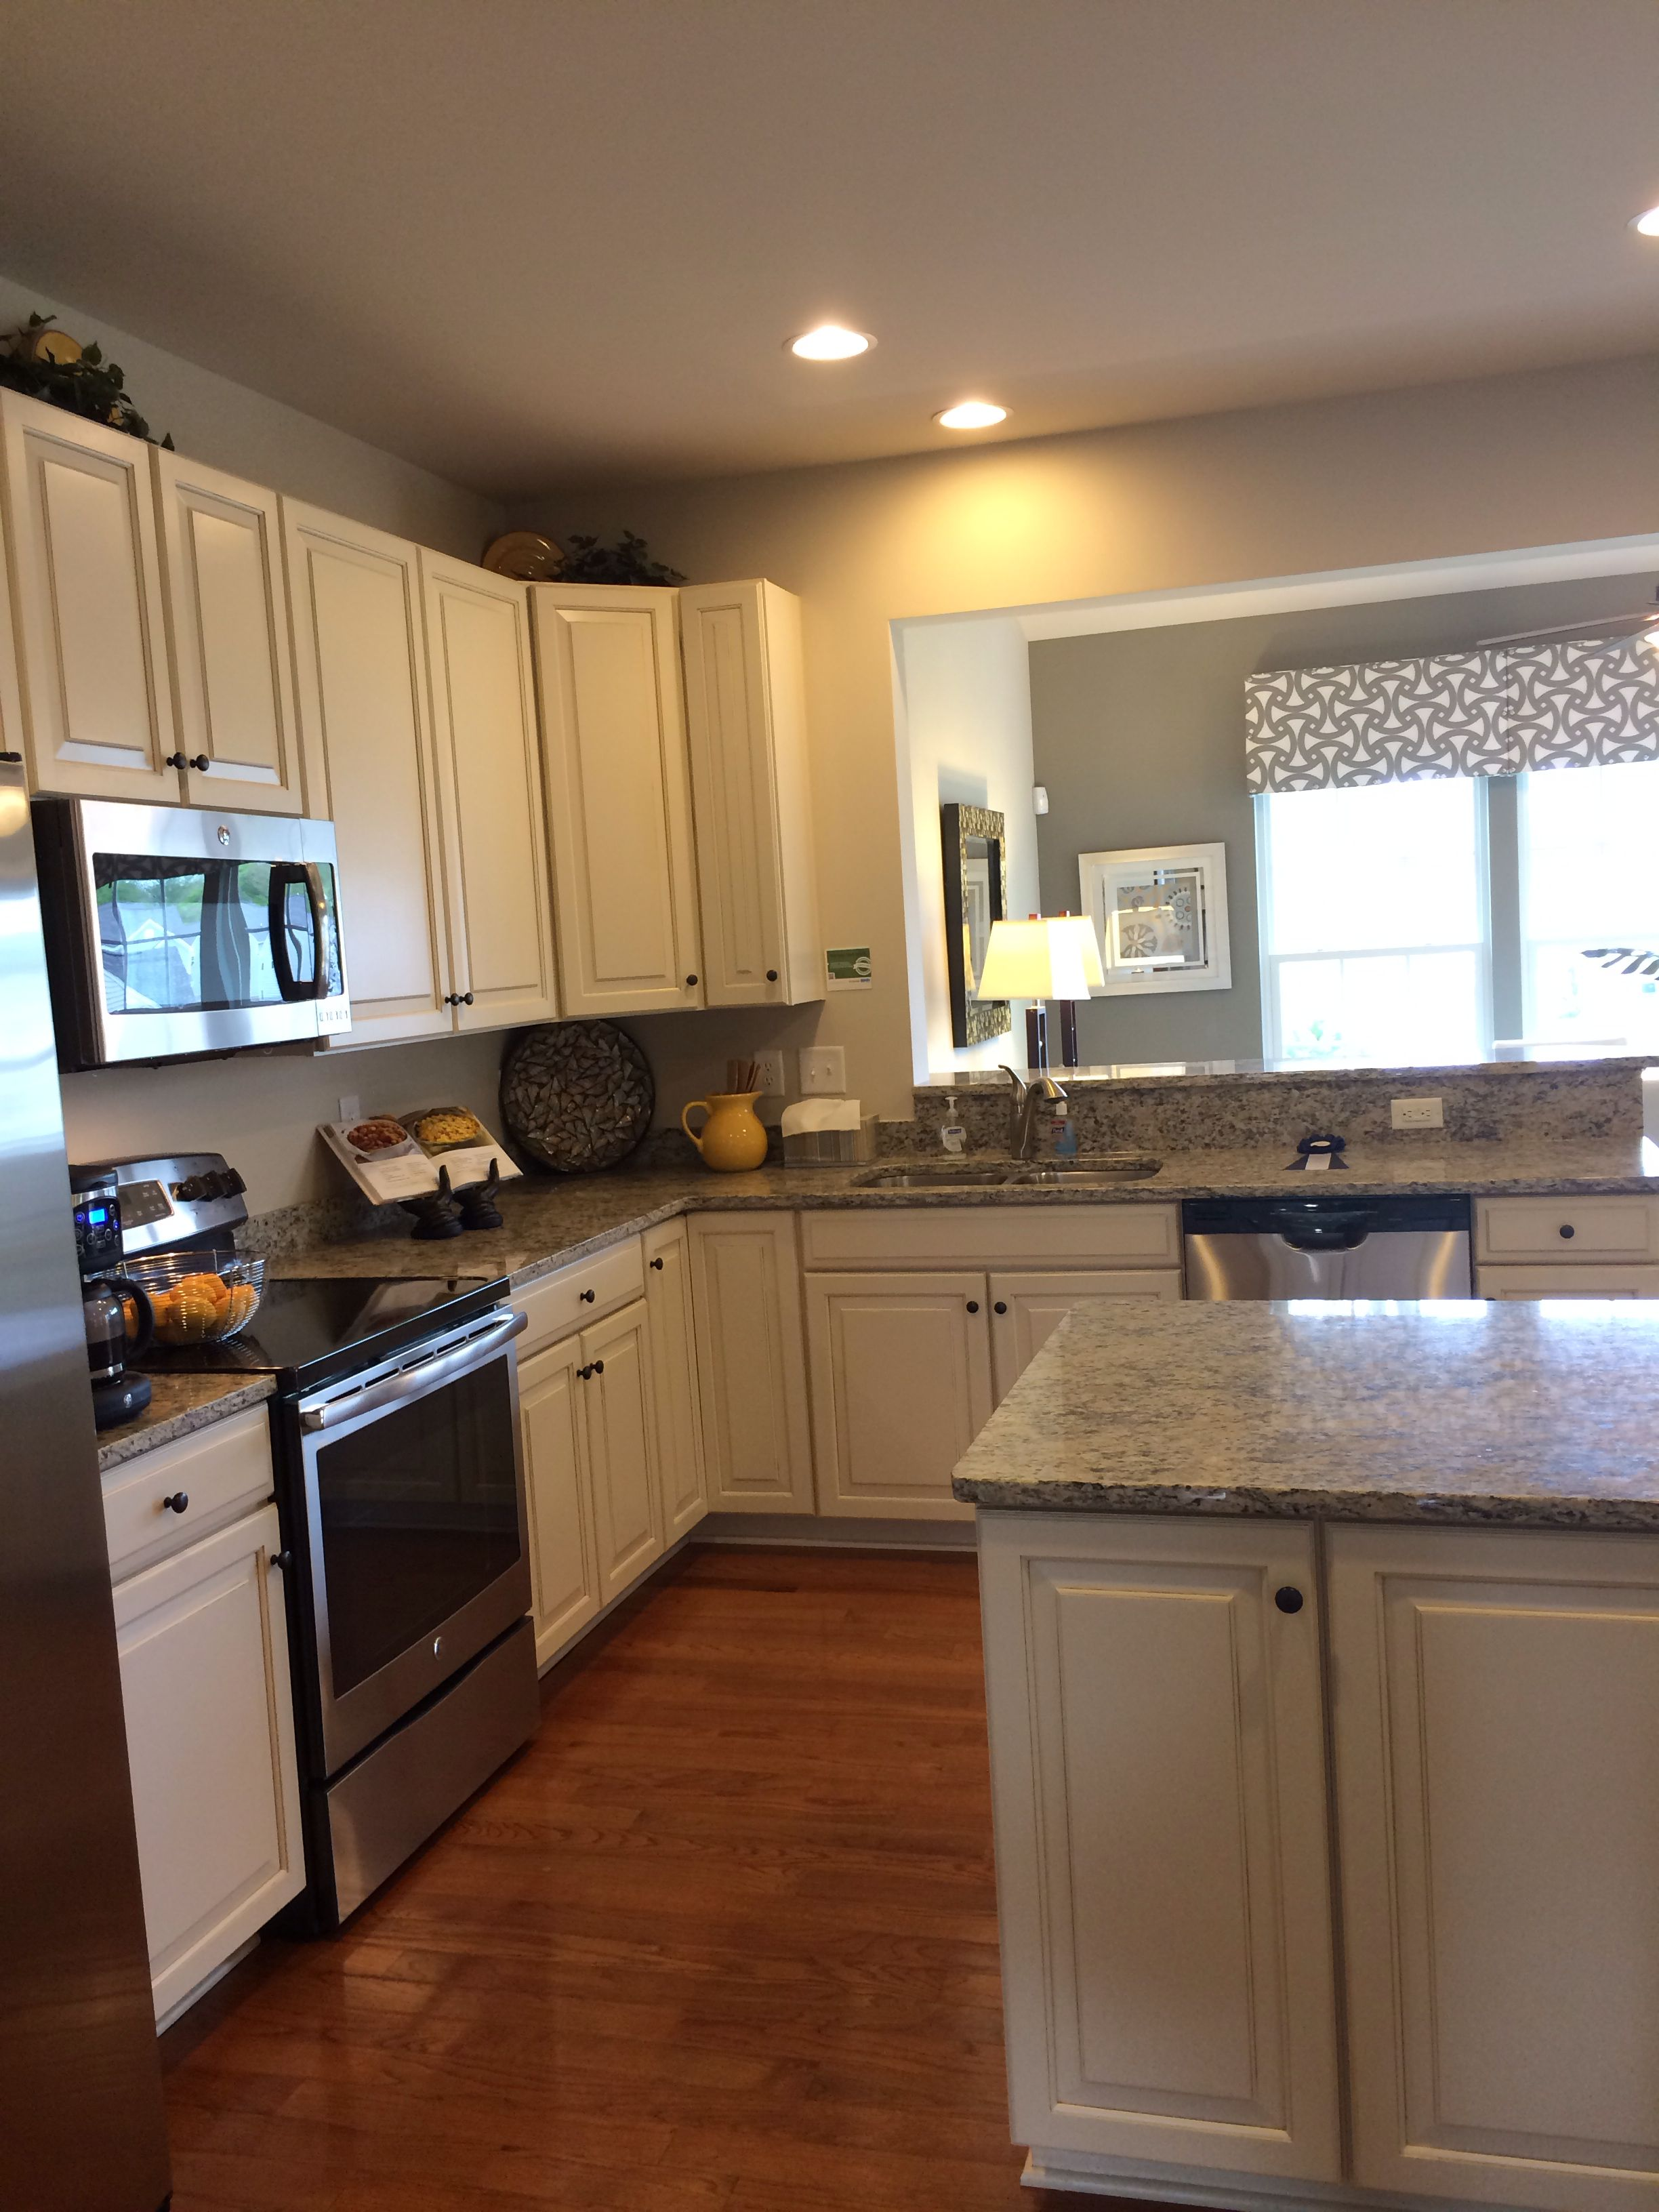 Kitchen Ryan Homes Rome Home Kitchens Ryan Homes Kitchen Remodel